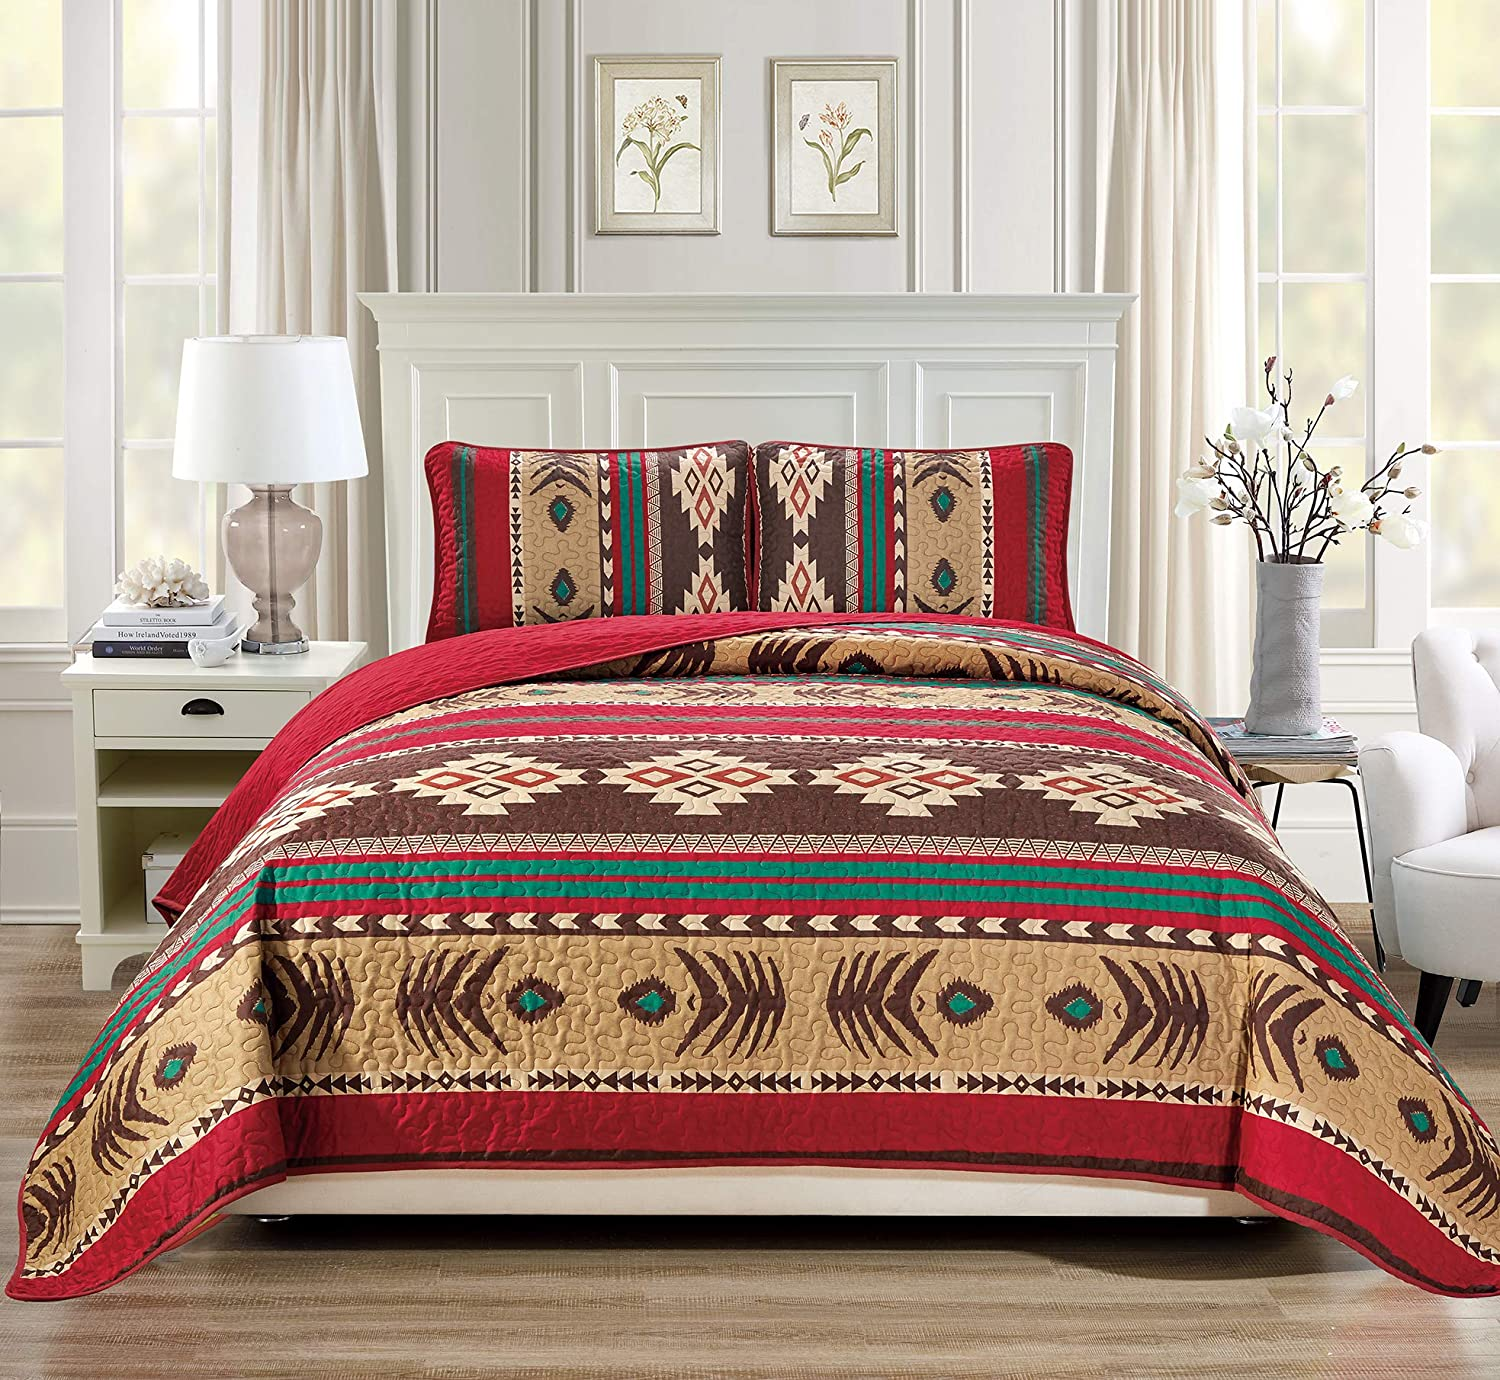 Rugs 4 Less Western Southwestern Native American Tribal Navajo Design 3 Piece in Brown Green and Burgundy Oversize Bedspread Quilt Set (King/California King) 3pc Mojave King - Cal King